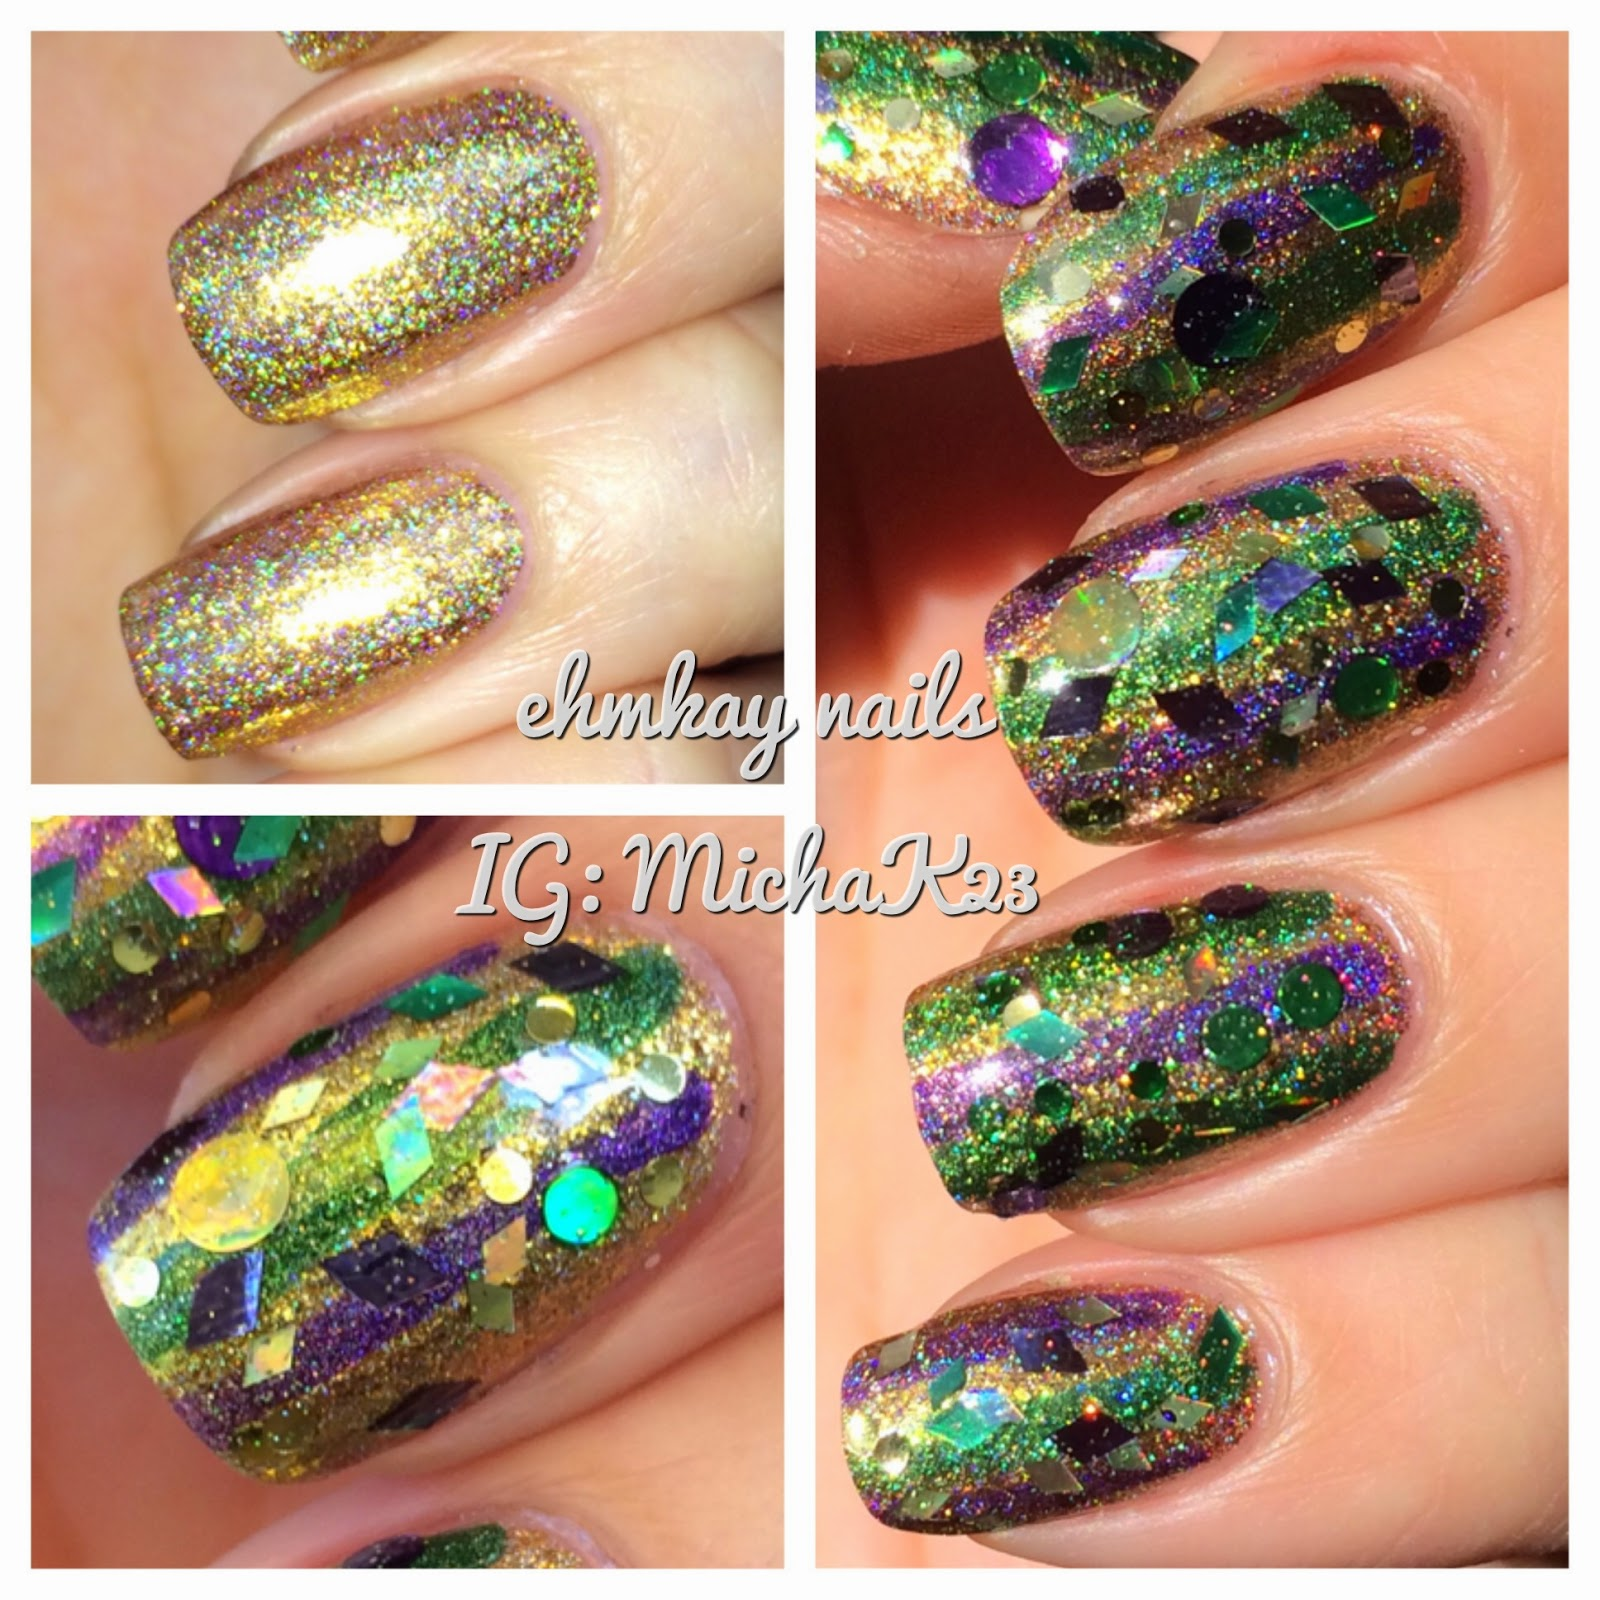 ehmkay nails: Mardi Gras Stripes for Fat Tuesday!